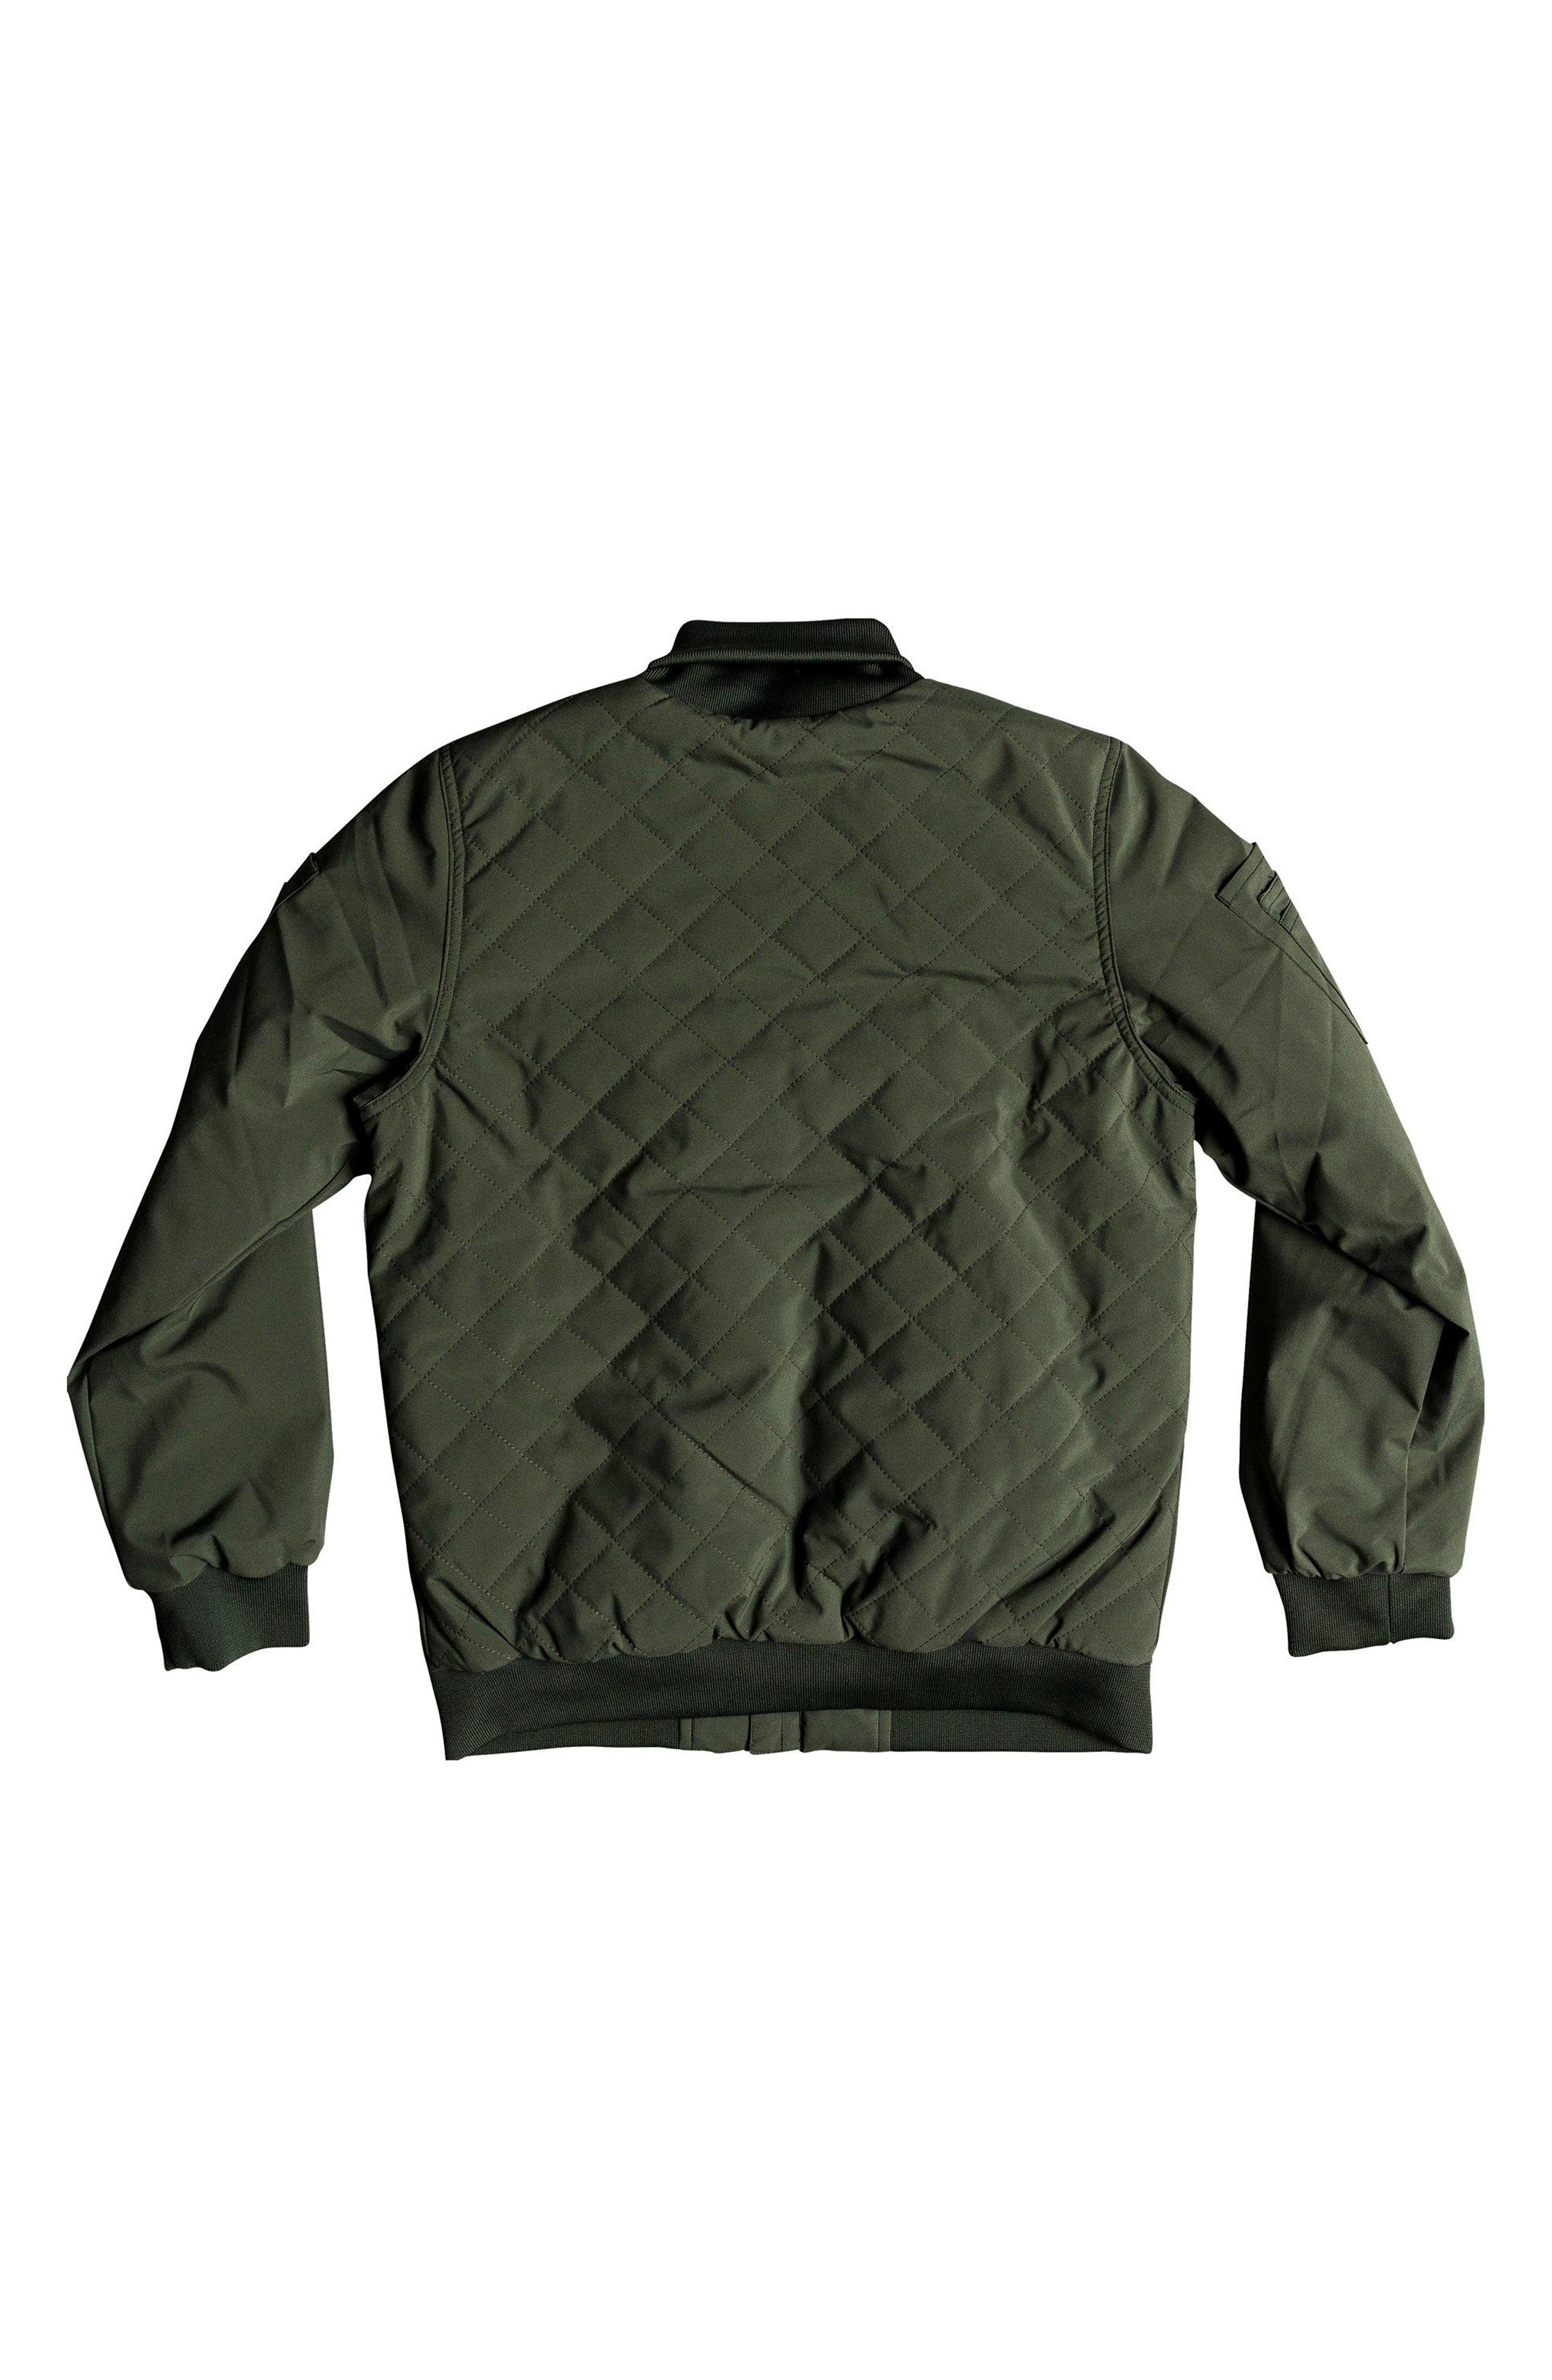 Mankai Sun Bomber Jacket,                             Alternate thumbnail 2, color,                             THYME